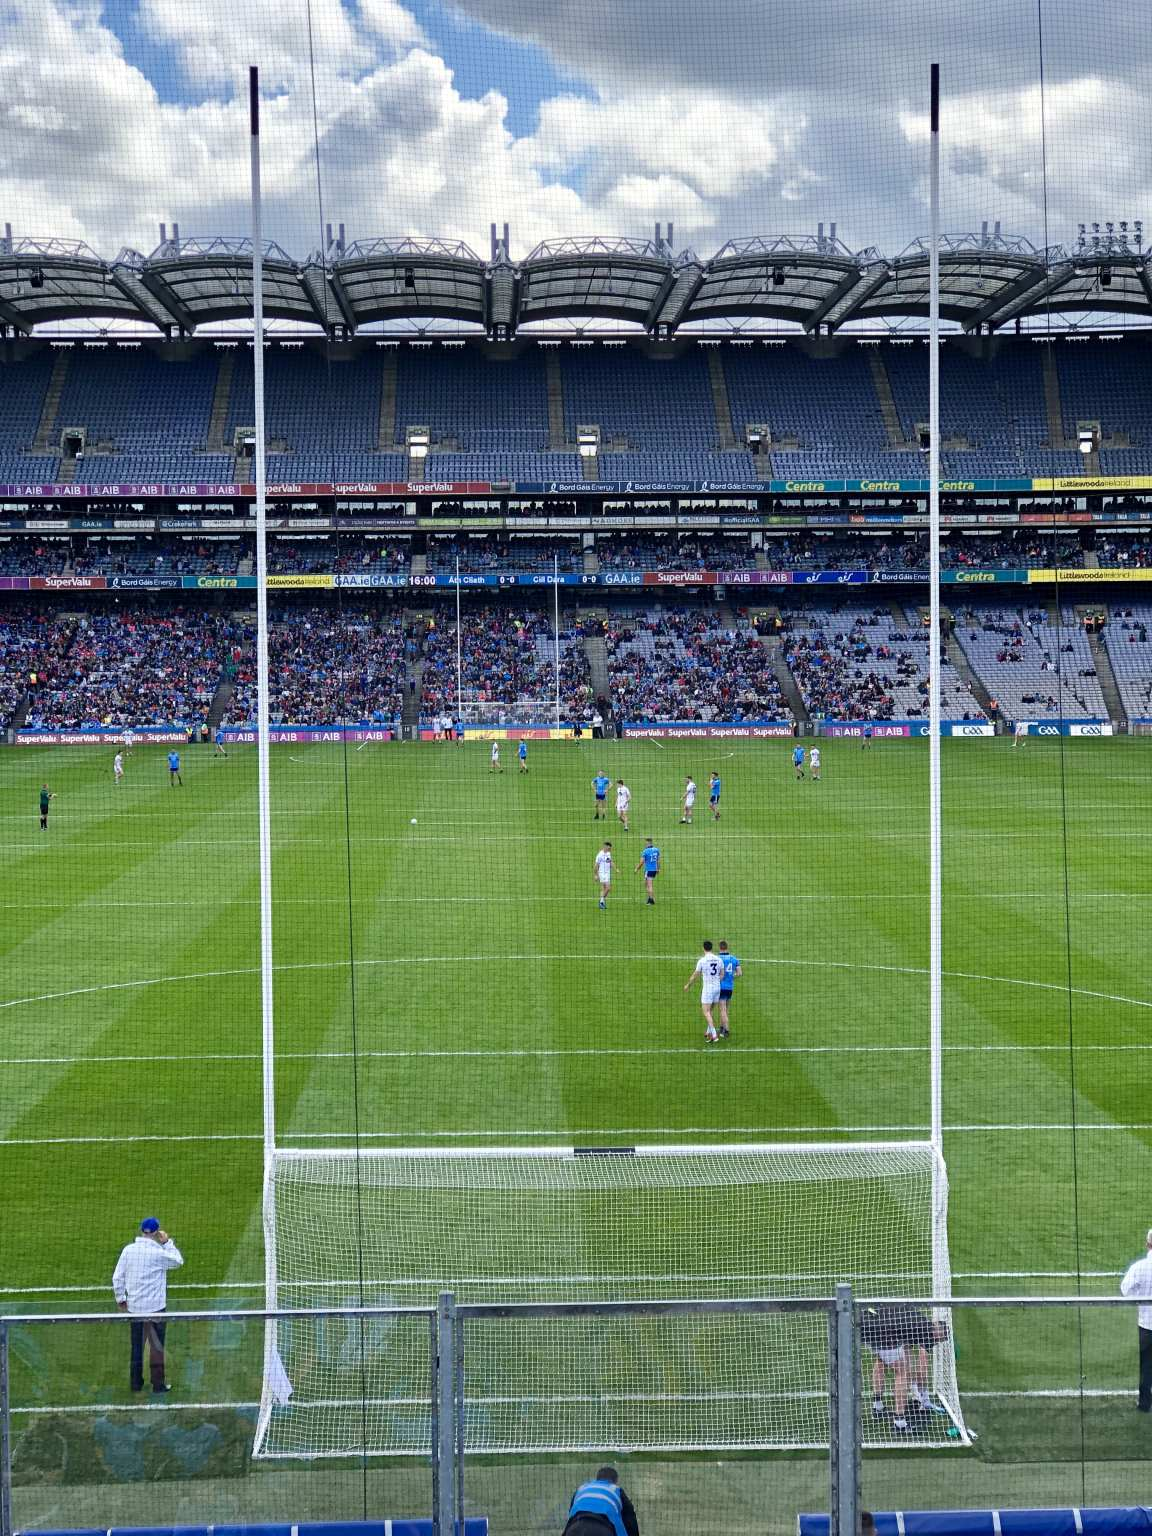 Dublin and Kildare Players on the Croke Park pitch just before their Leinster SFC Semi Final